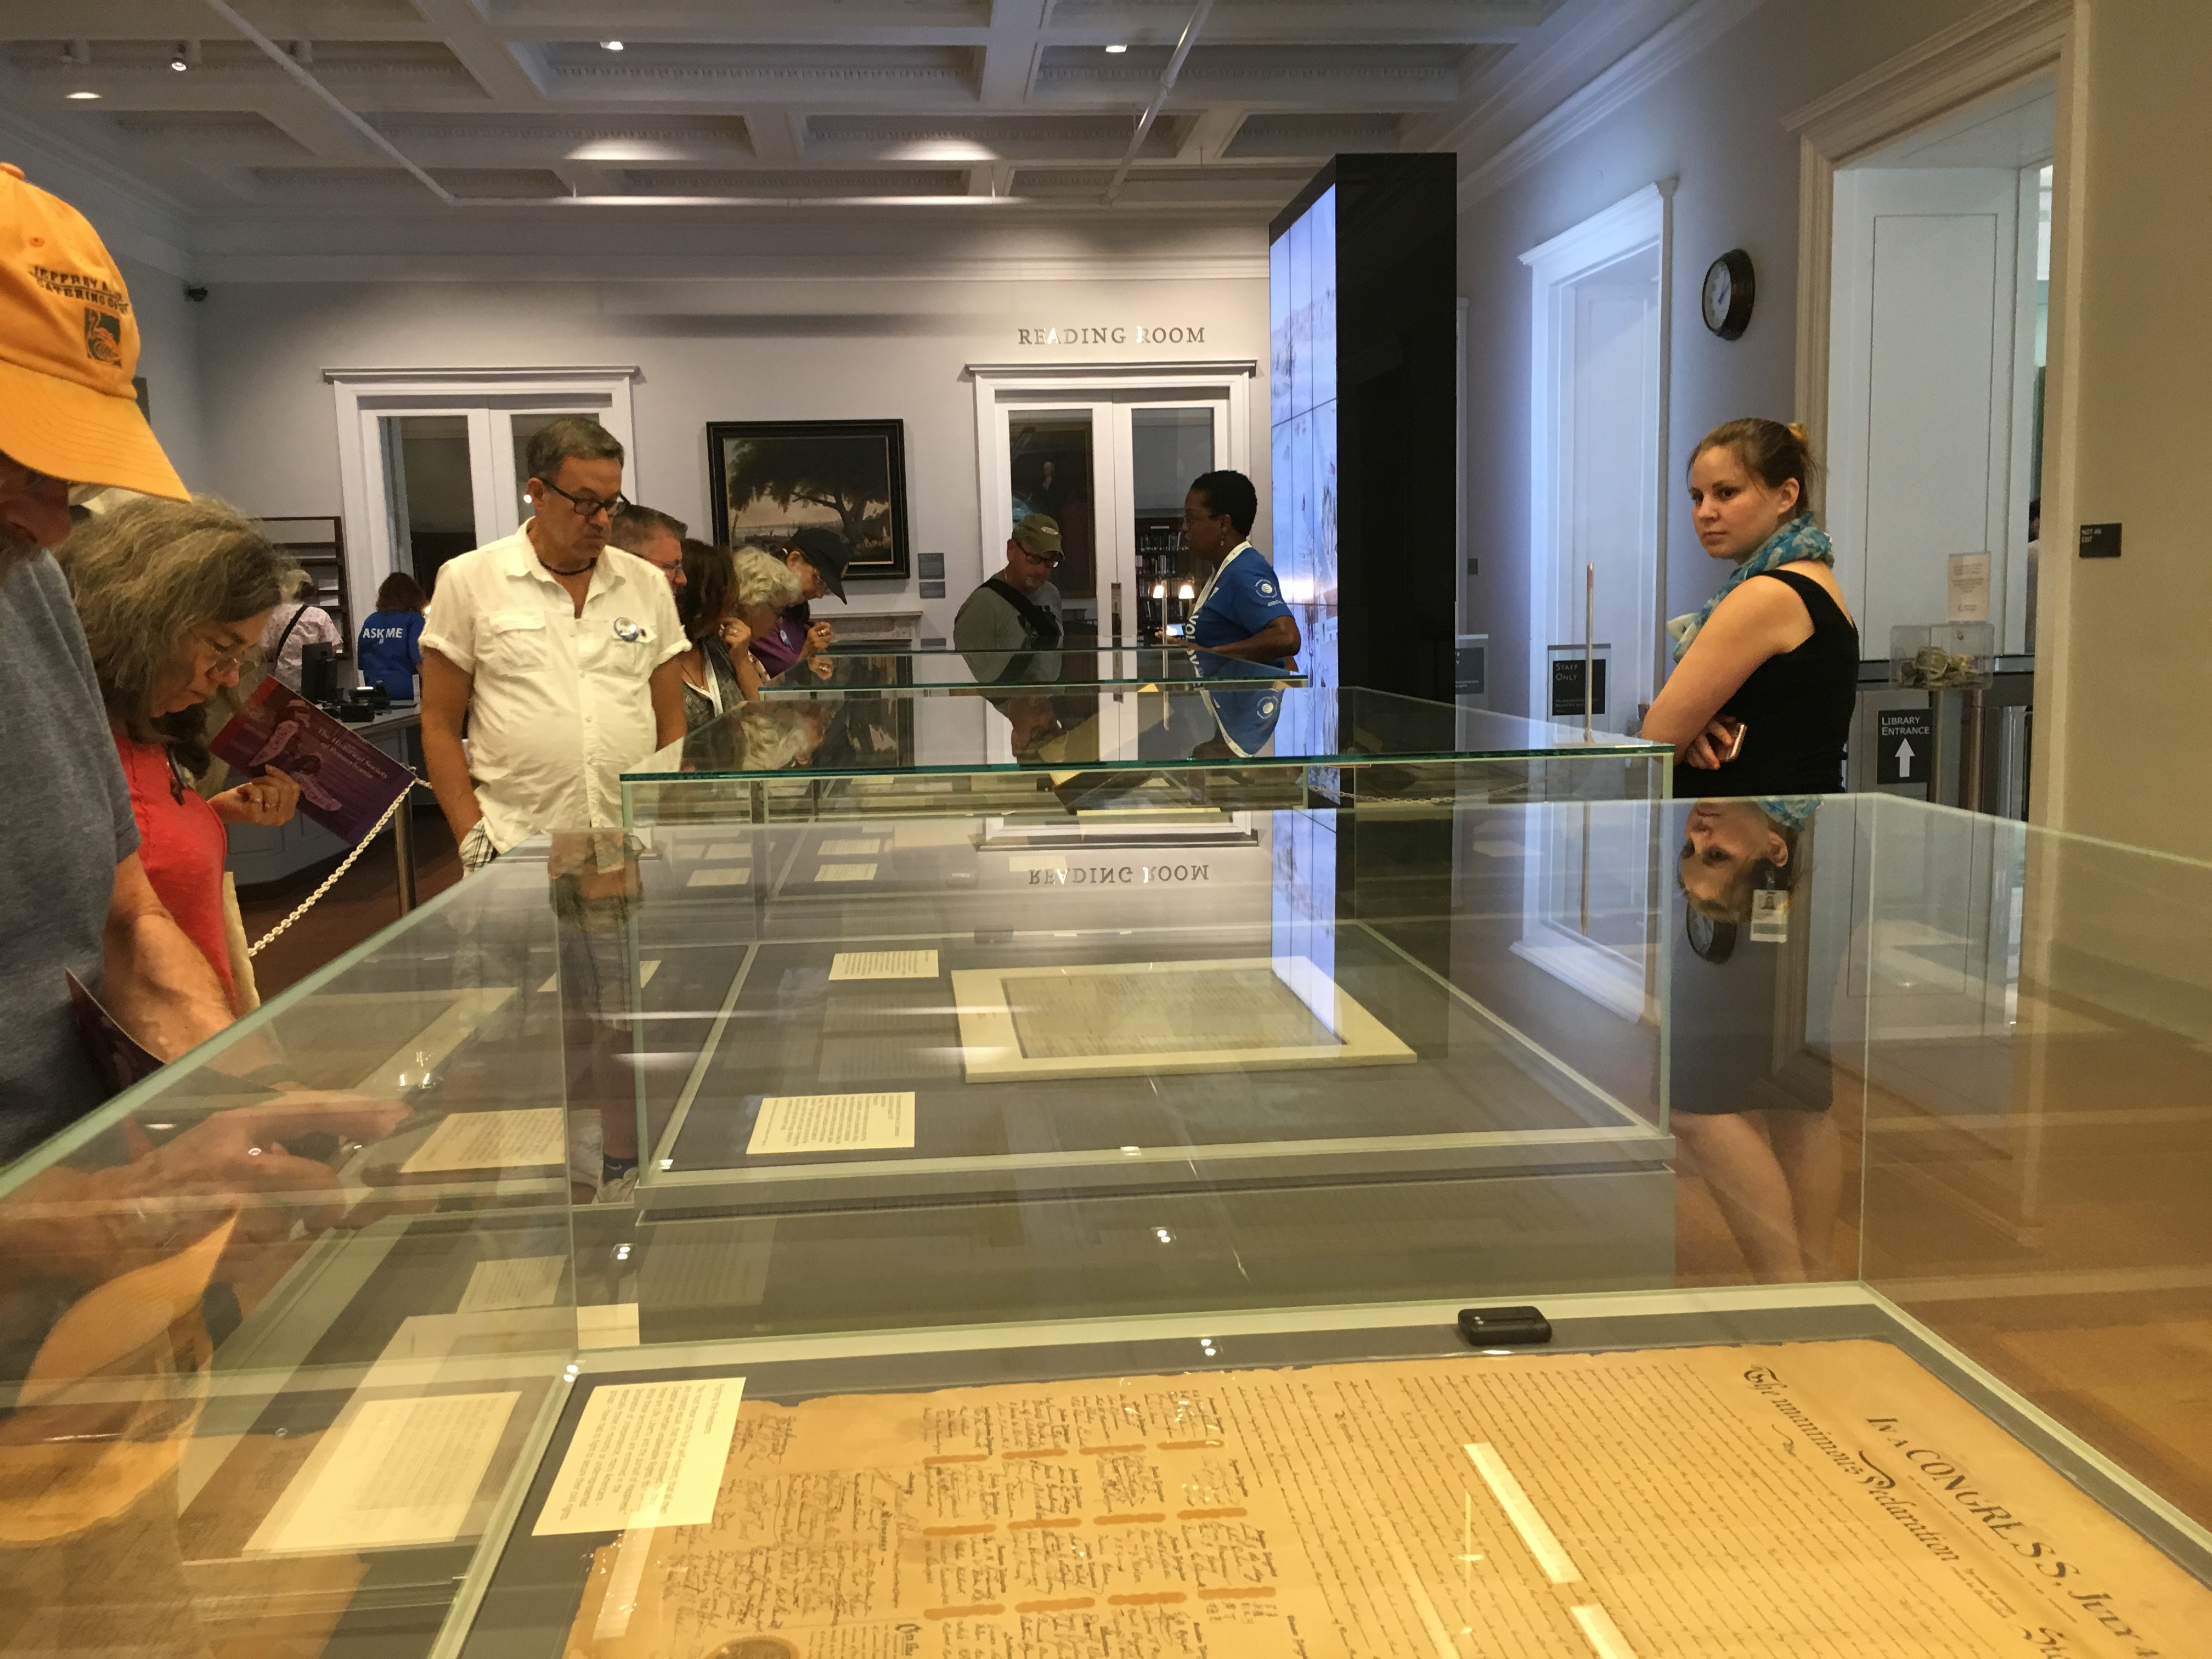 American democracy on display at Historical Society of Pennsylvania